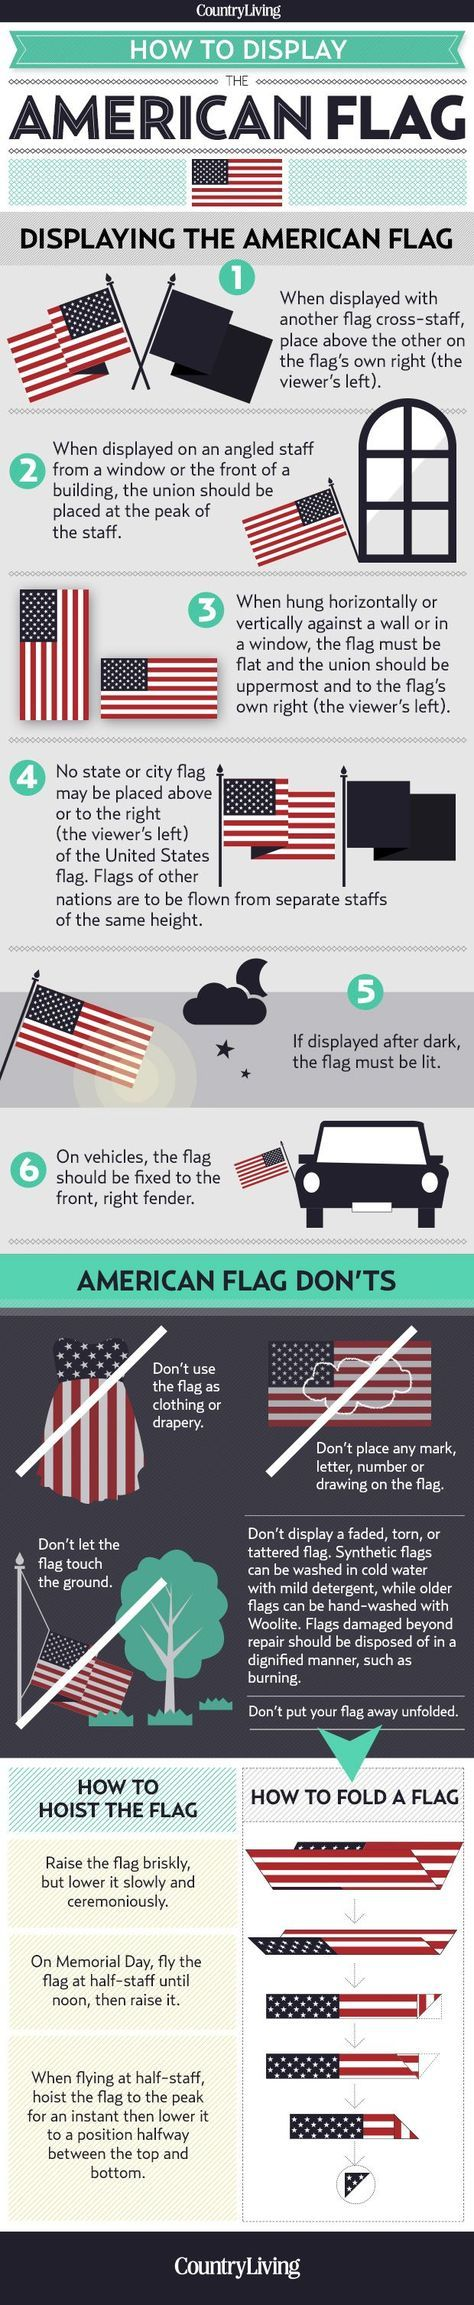 American Flag Etiquette - Displaying the American Flag - via Country Living.